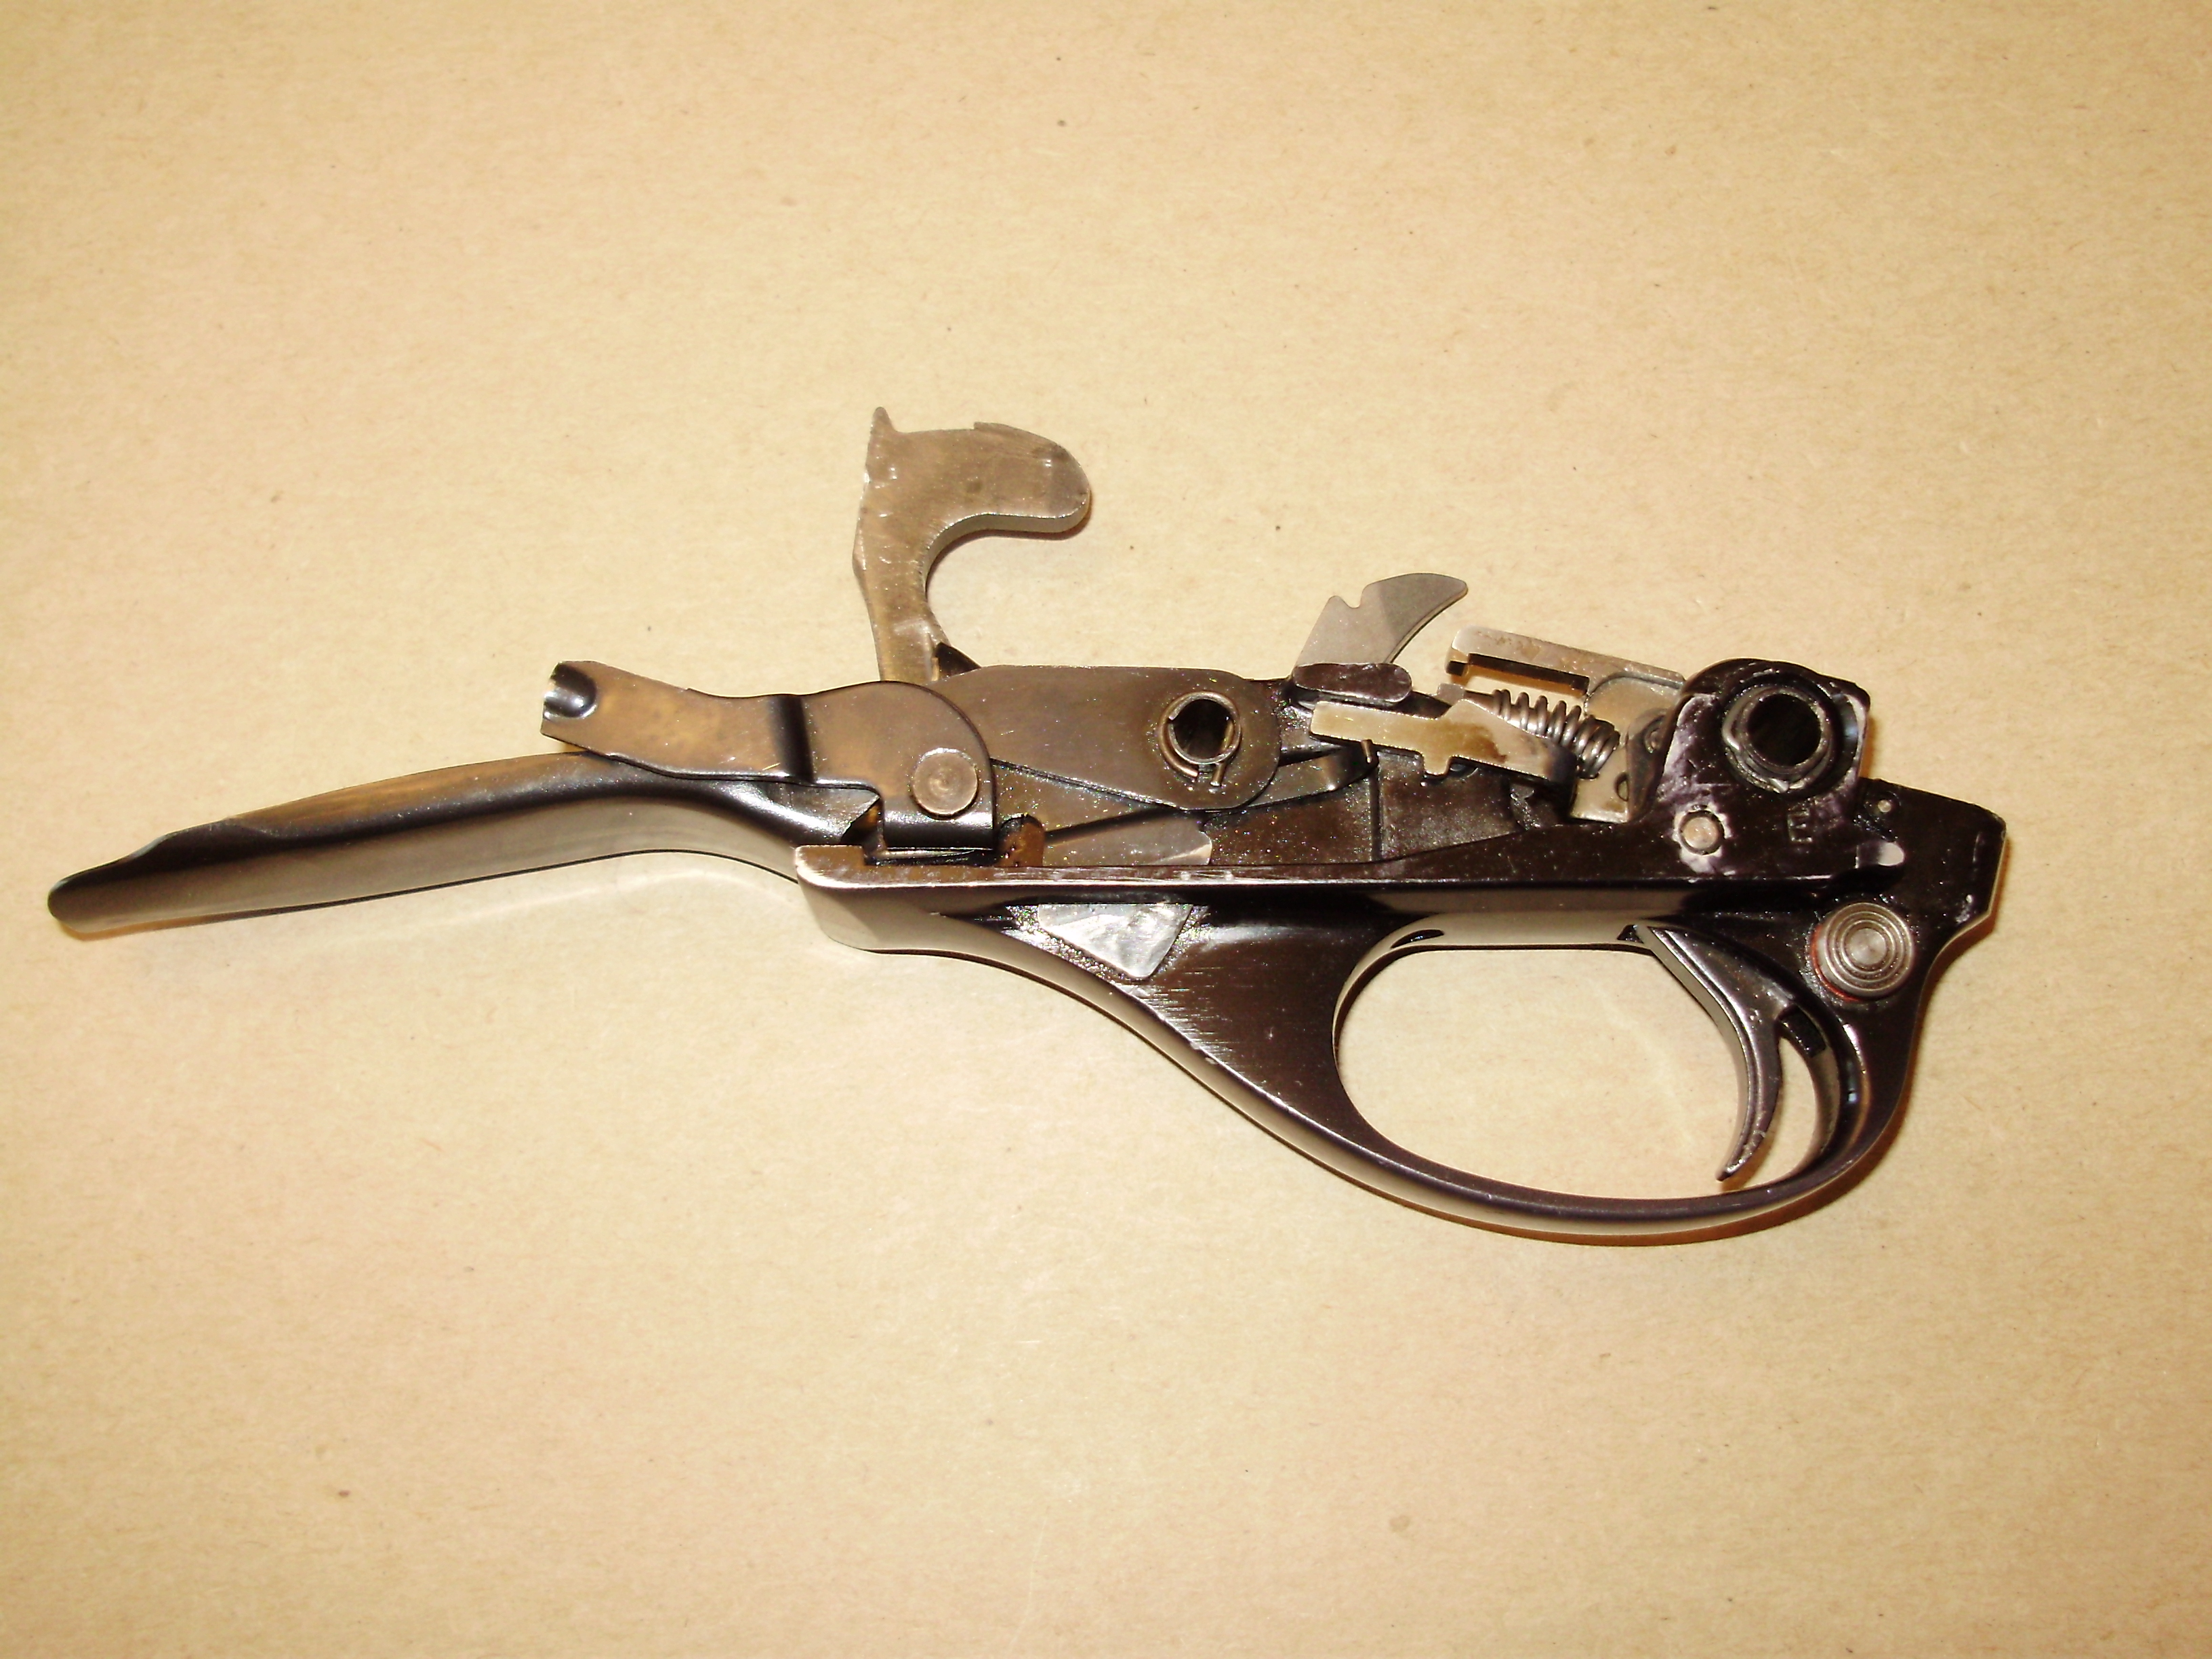 Sold - Remington 870 Release Trigger | Trap Shooters Forum